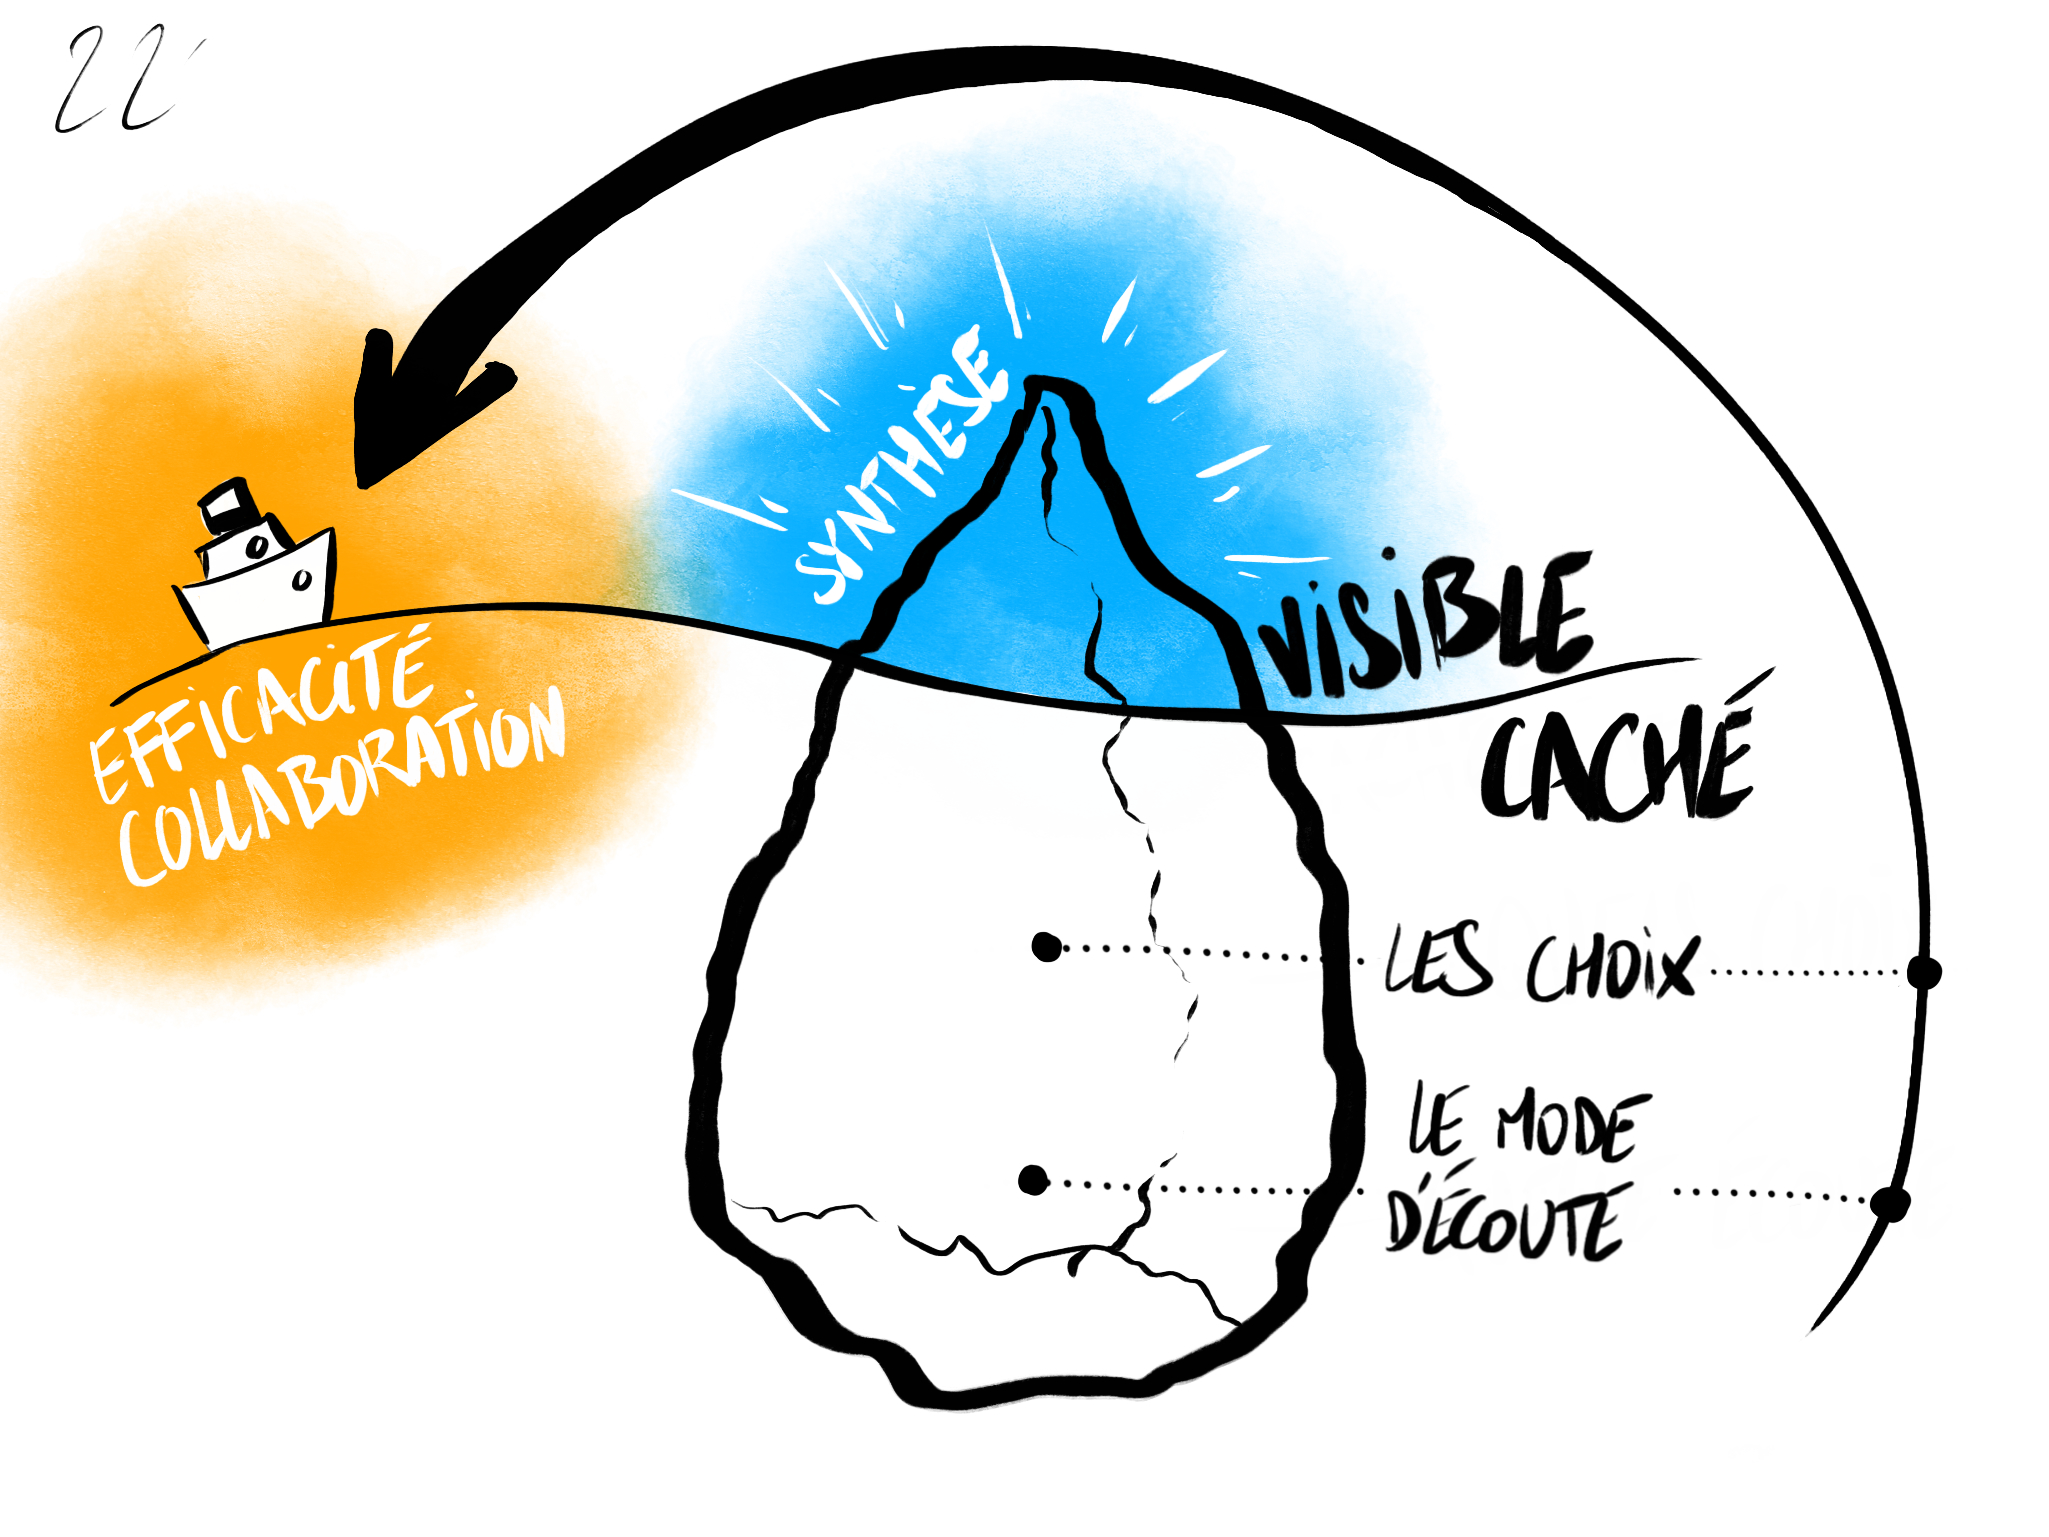 Les aspects visibles et invisibles de la Facilitation Graphique